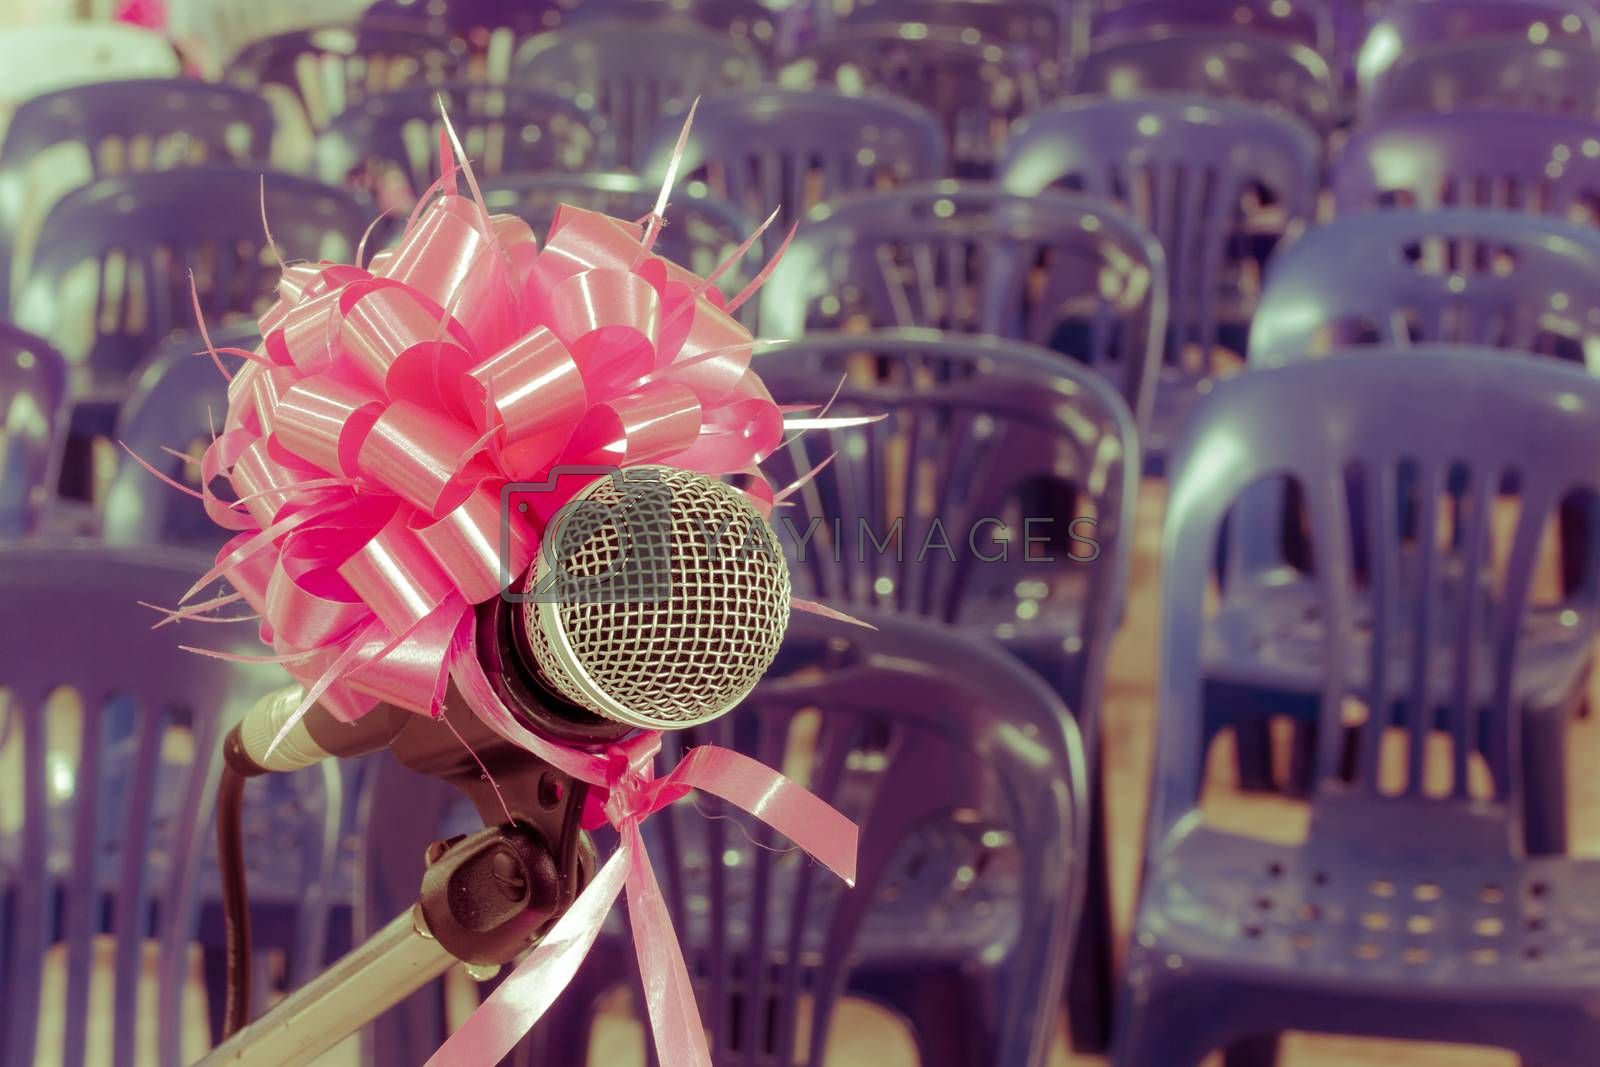 microphone with pink bow and ribbon in the background of blue chairs, retro vintage style.